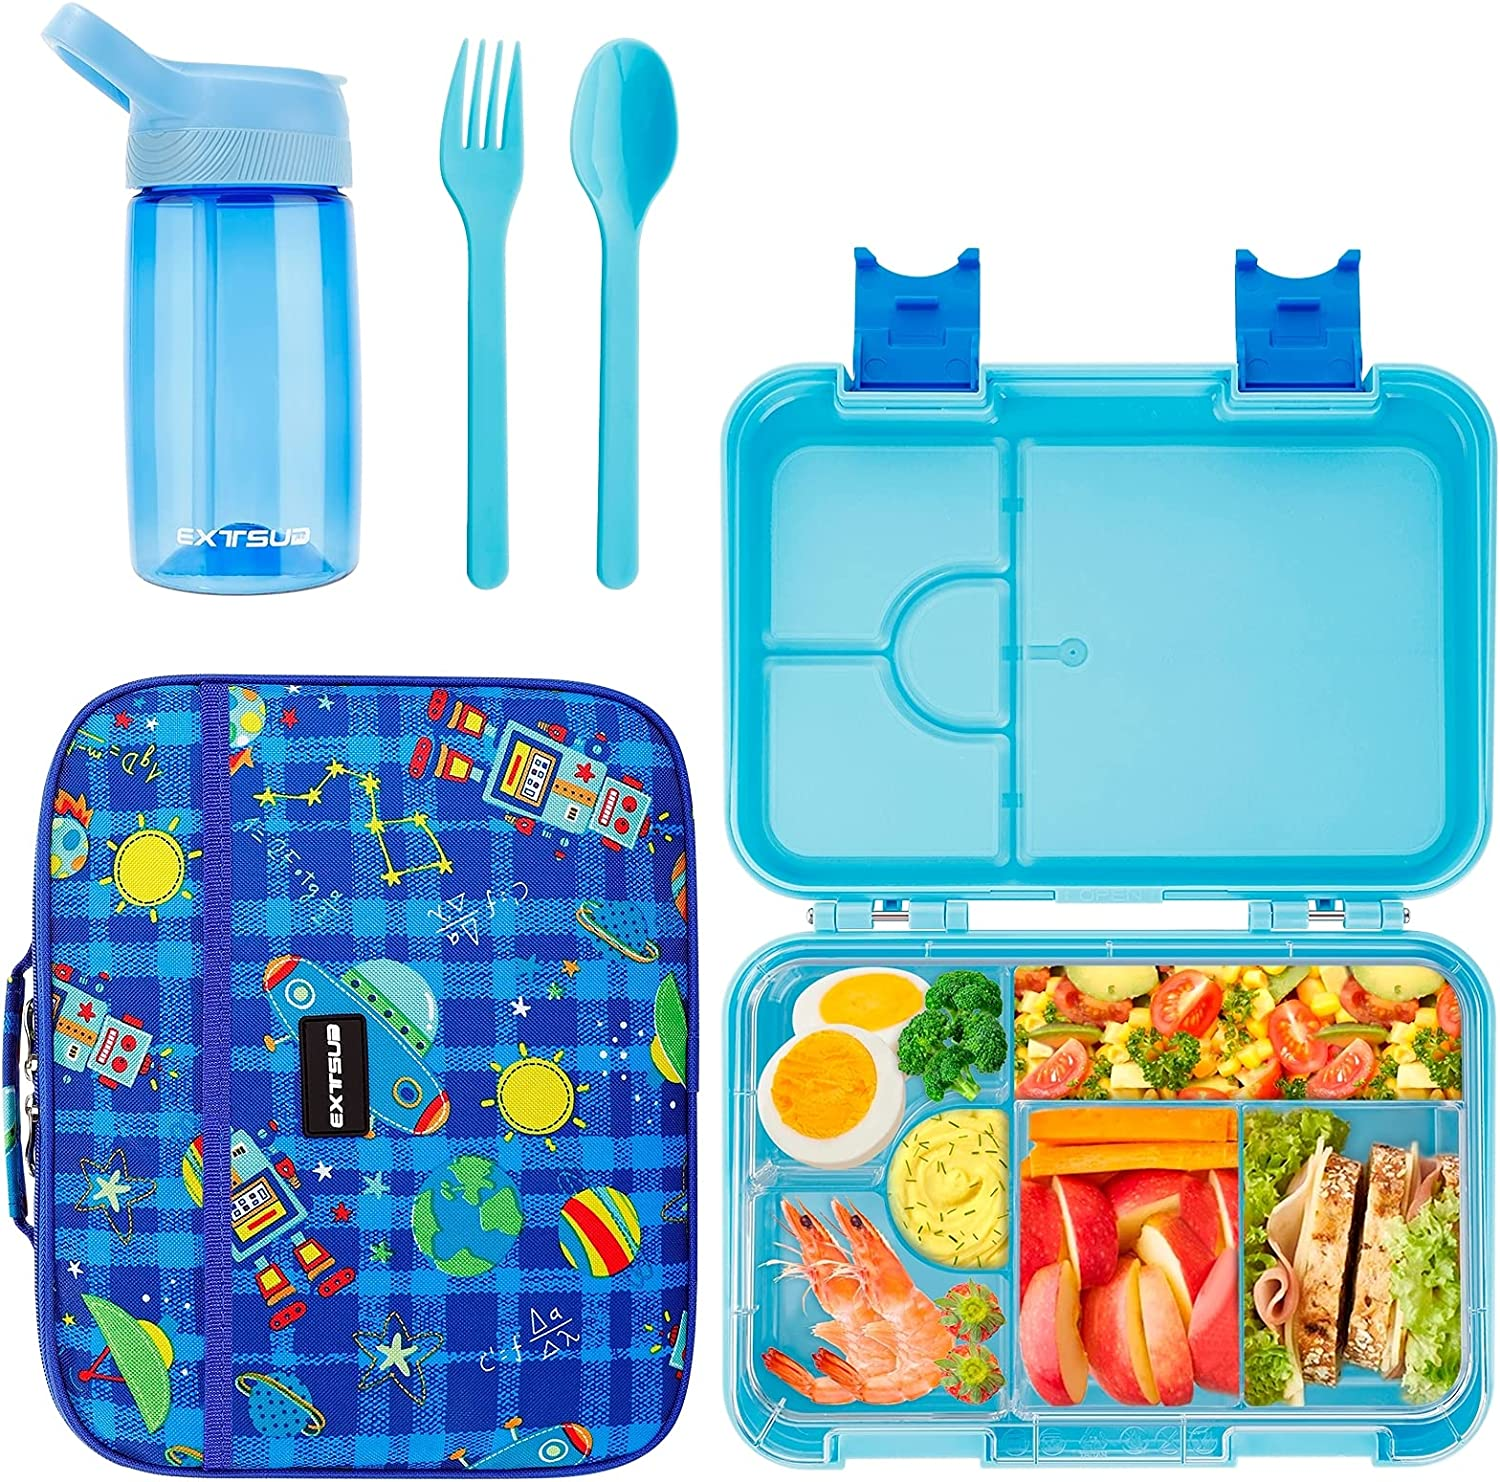 EXTSUD Lunch Box for Kids, 29 oz. Leak-Proof Bento-Style Kids Lunch Containers with Insulated Cooler Lunch Bag and Water Bottle, Durable BPA-Free 4/6 Compartment Snack Food Meal Prep Container Boxes